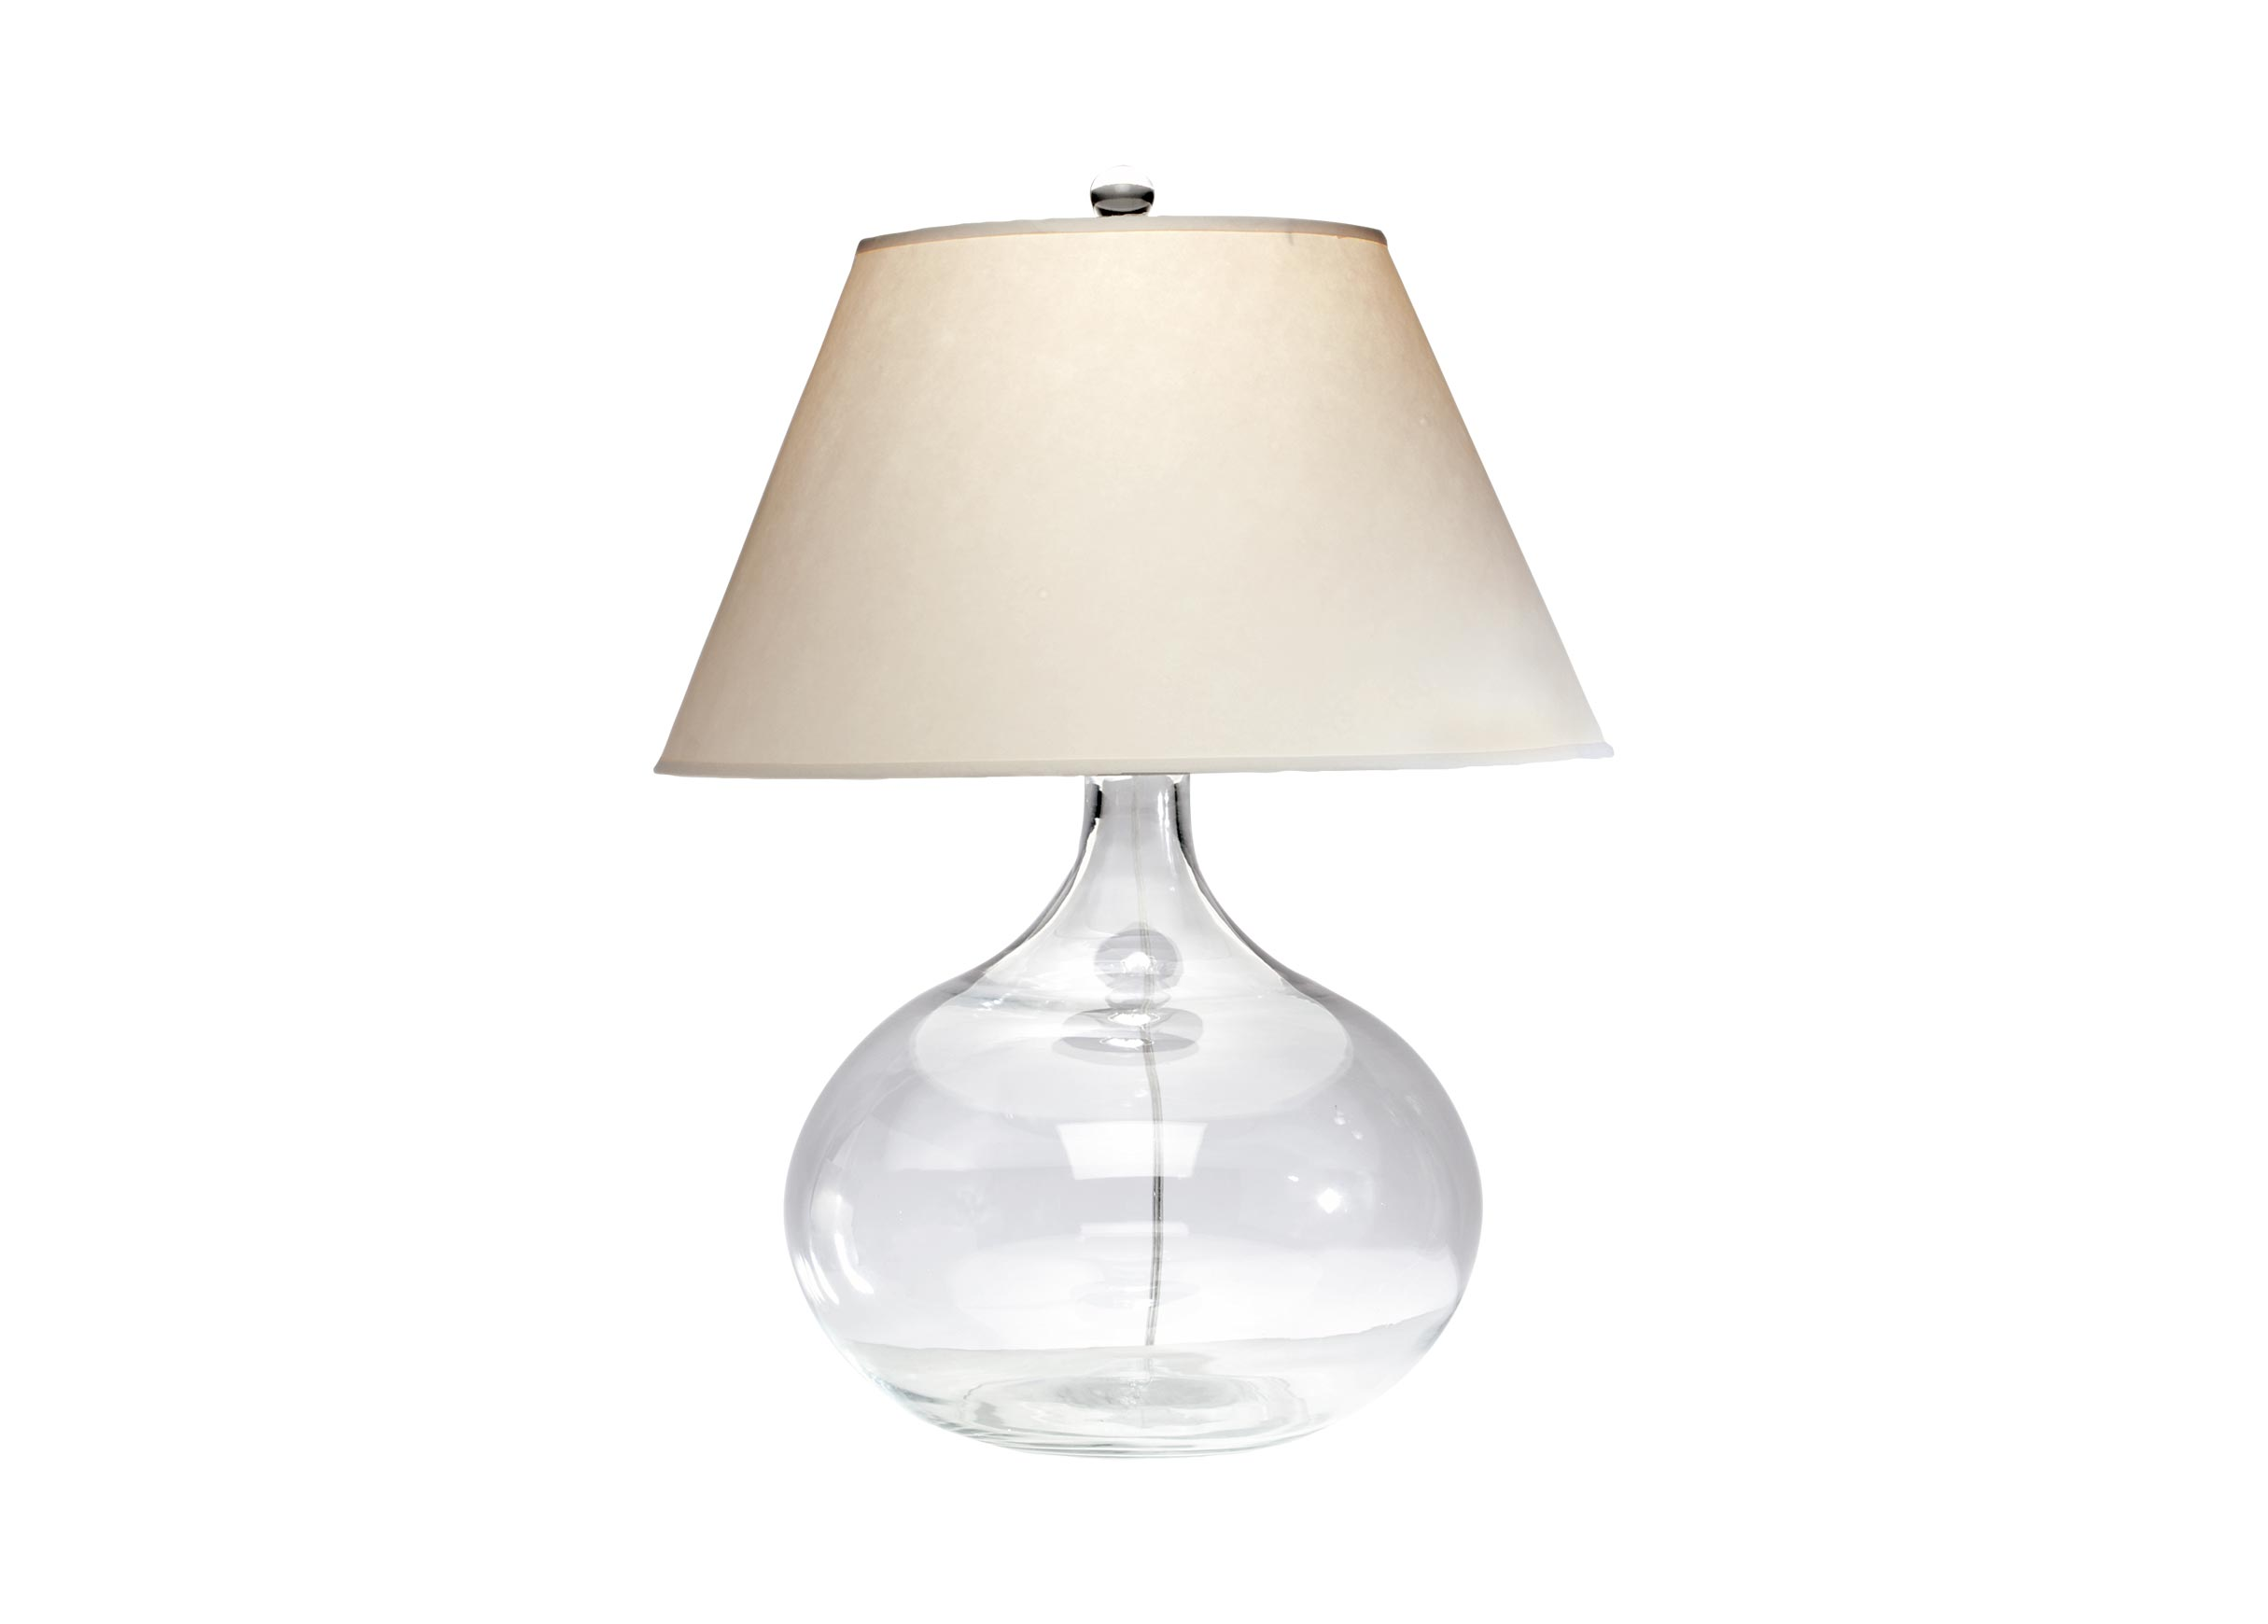 Clear glass table lamp table lamps - Chandelier desk lamp ...